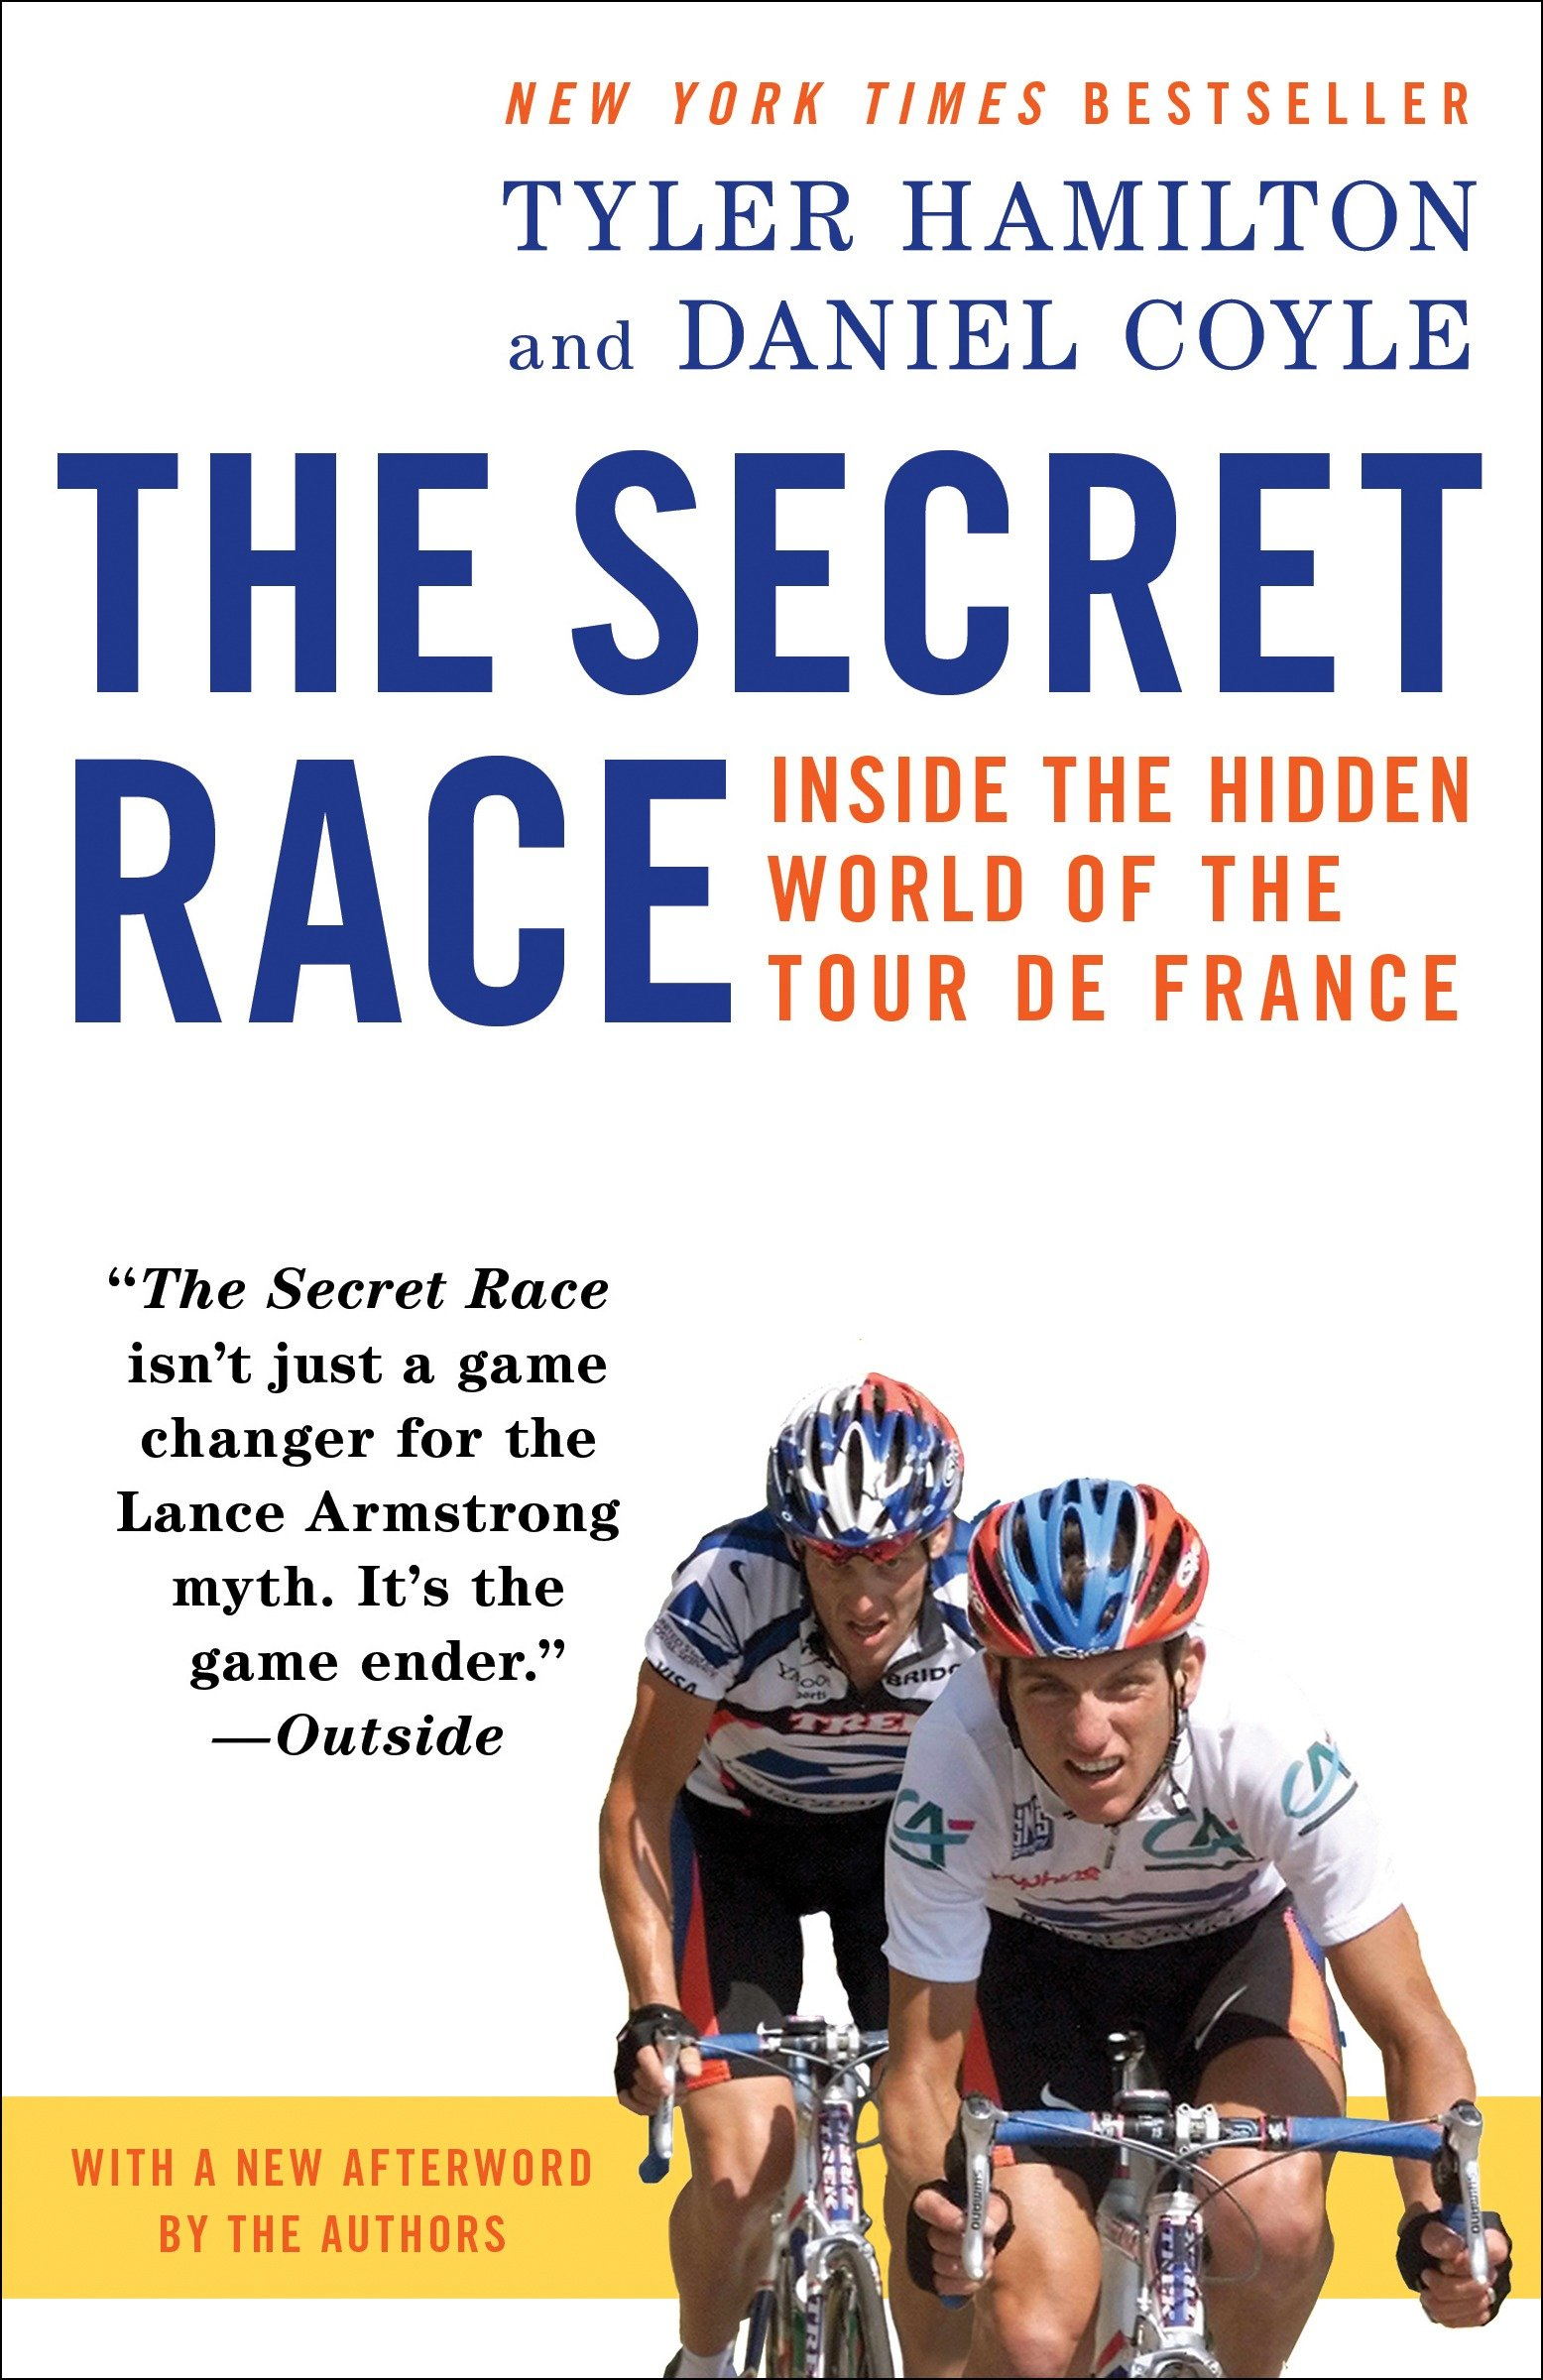 The secret race inside the hidden world of the Tour de France : doping, cover-ups, and winning at all costs cover image